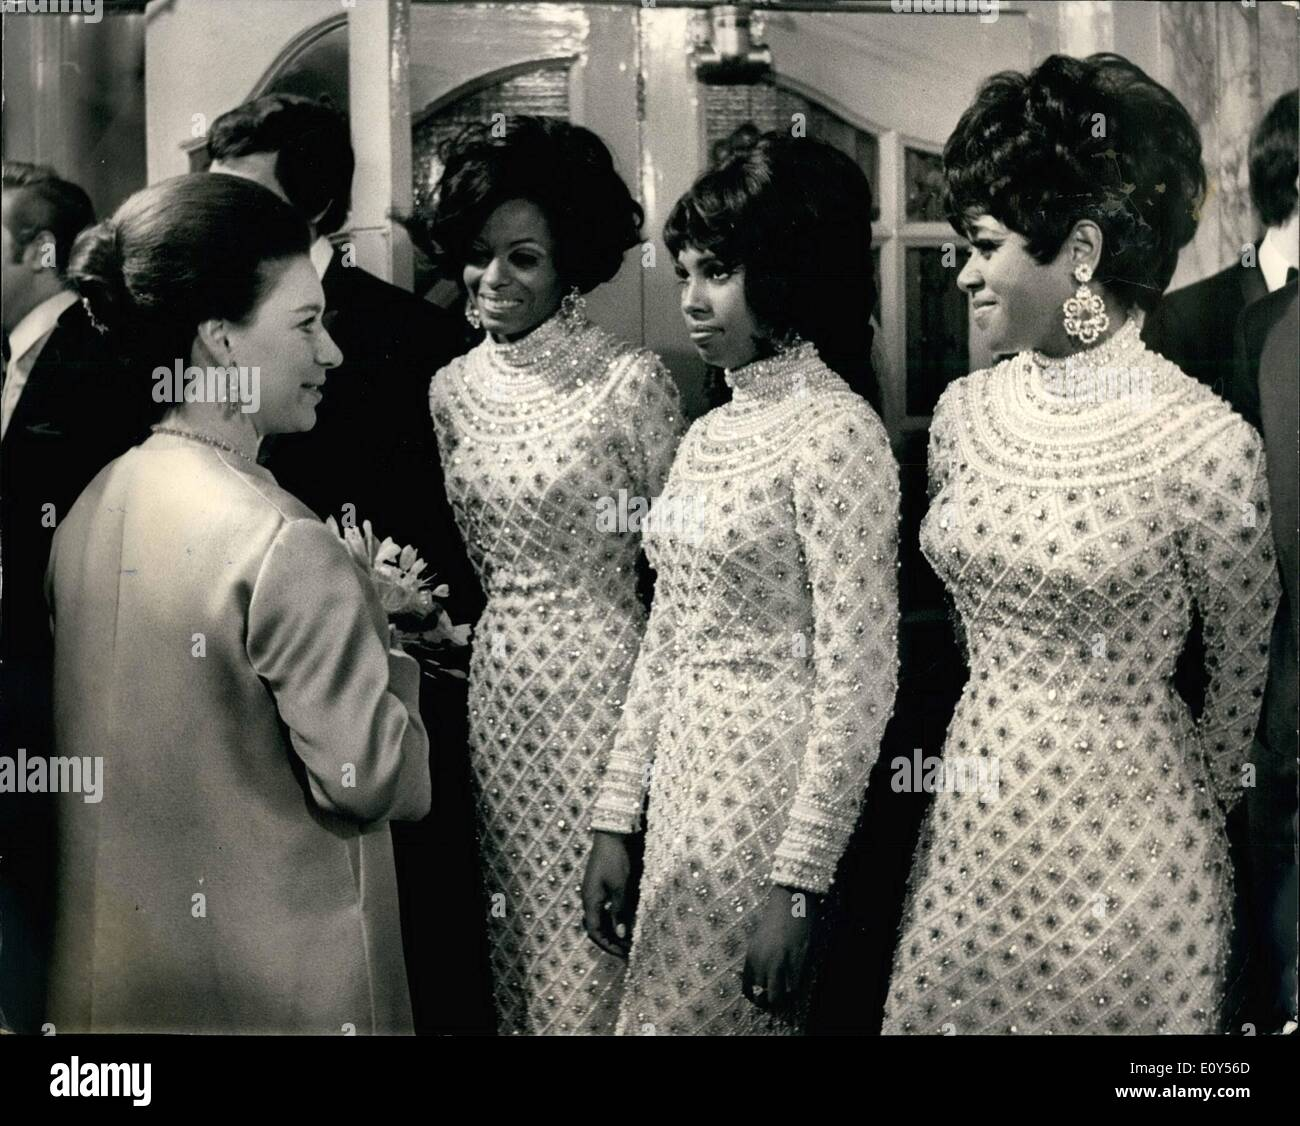 Nov. 11, 1968 - Royal Attend The Royal Variety Performance AT The London Palladium: Queen Elizabeth the Queen Mother, was accompanied by Princess Anne, Prince Charles, Princess Margaret, and her Husband, Lord Snowdon, when they attended the Royal Variety Performance at the London Palladium this evening in aid of the Variety Artistes Benevolent Fund. Phot Shows Princess Margaret seen in conversation with the Supremes pop group after the show. - Stock Image